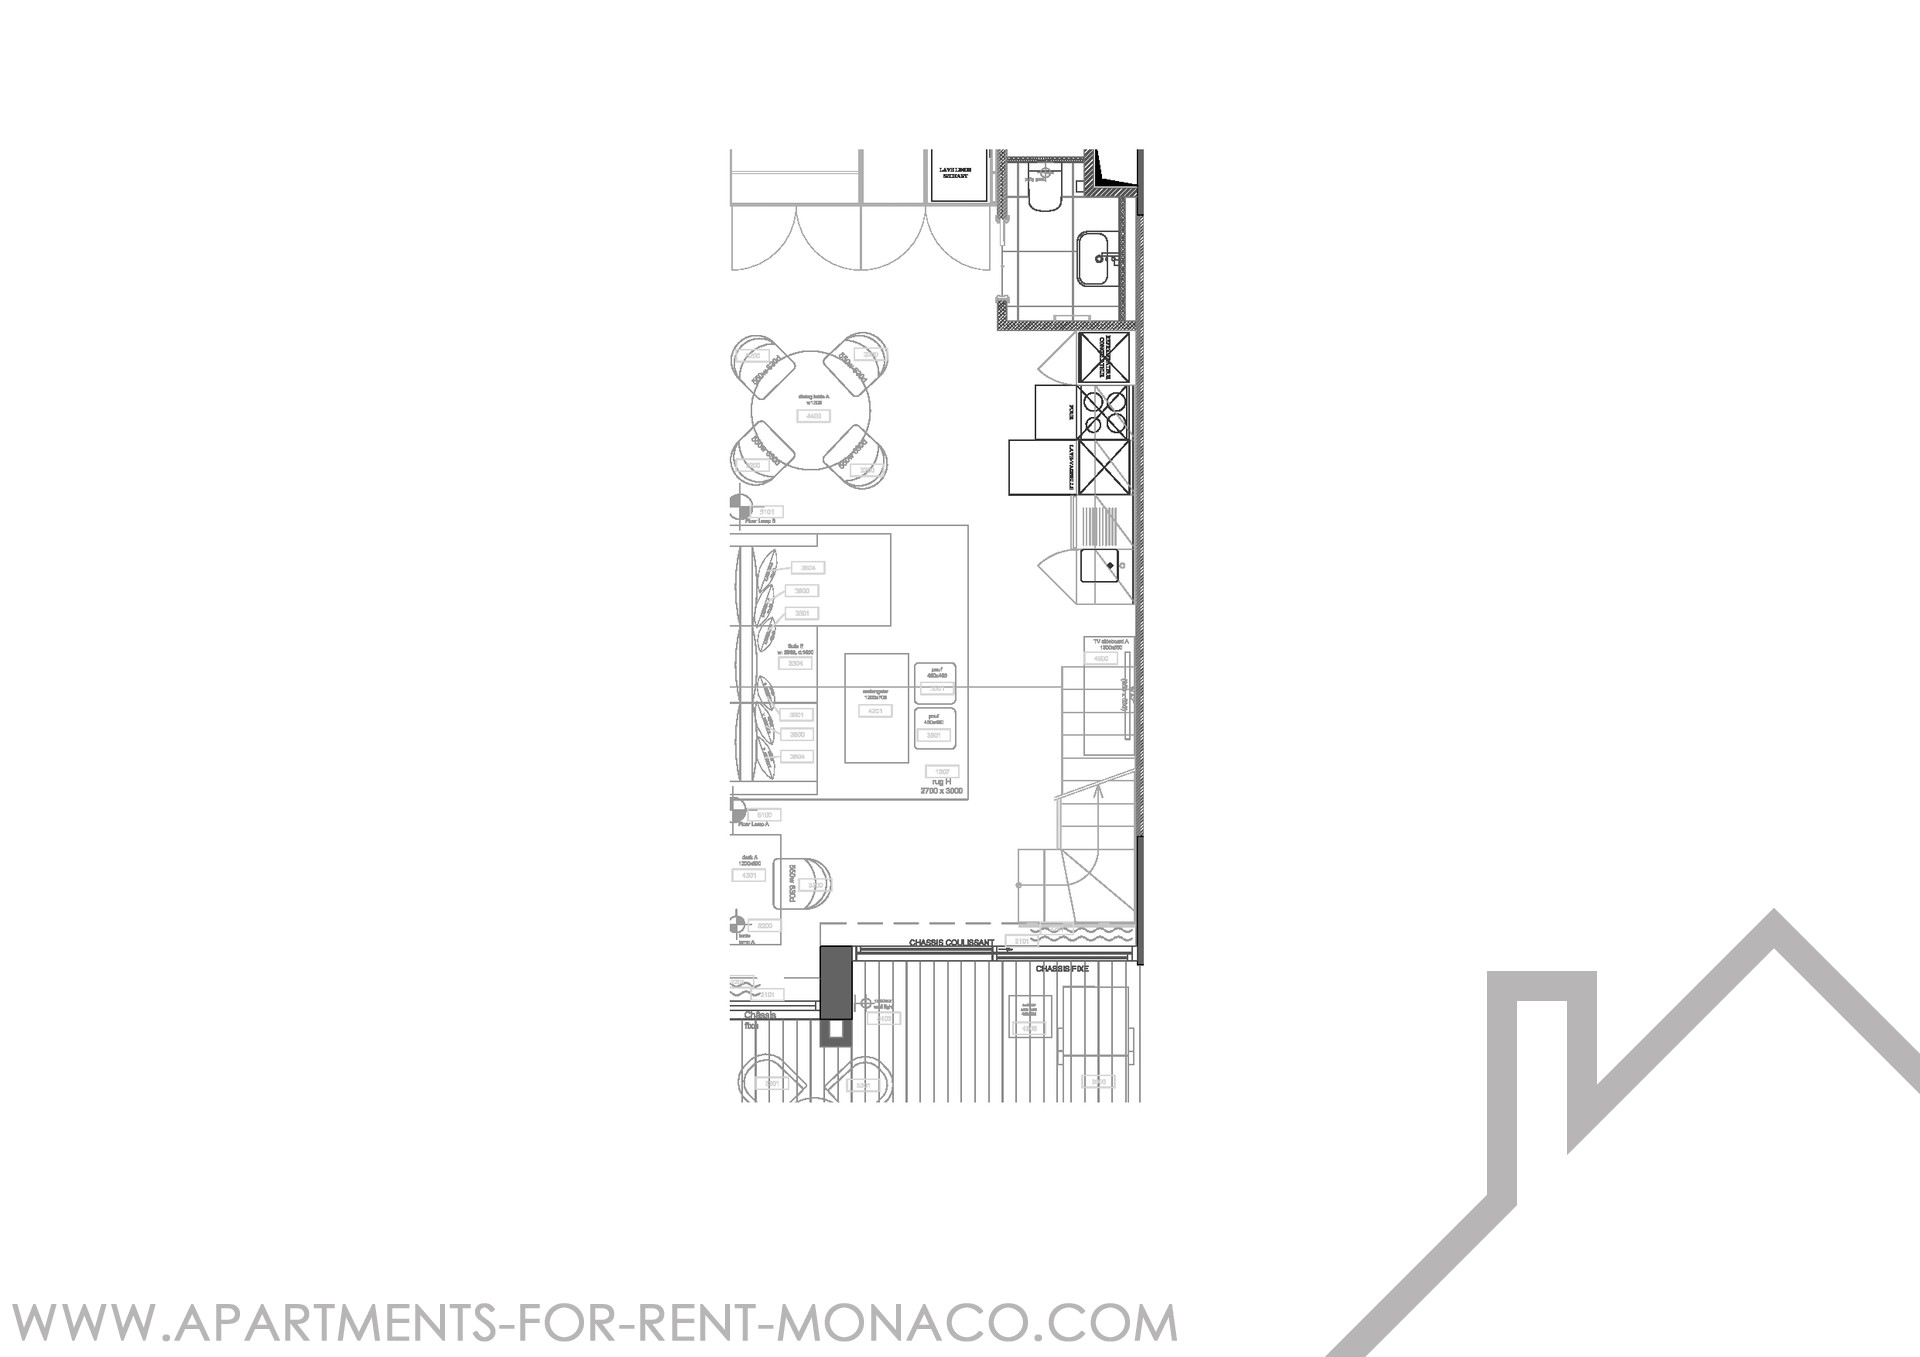 SOLE AGENT - Beautiful 1 bedroom - Apartments for rent in Monaco